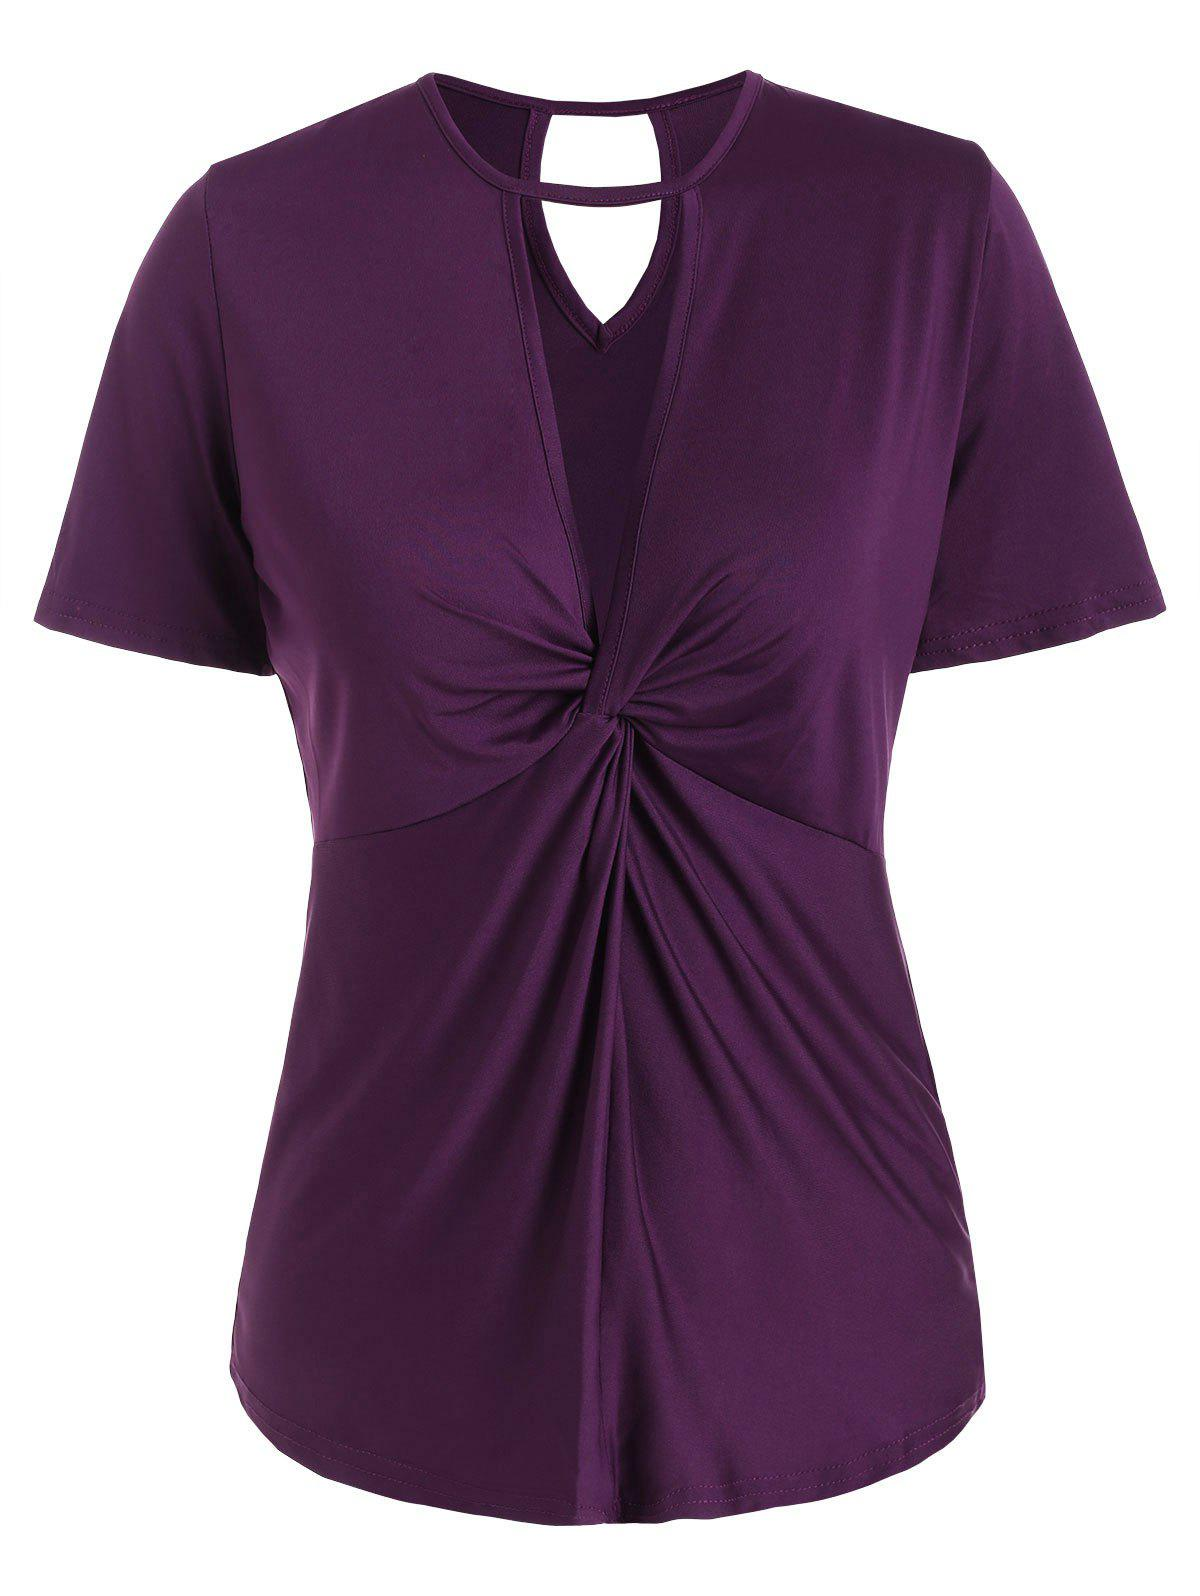 Twist Front Cut Out Solid Tee - VIOLET 2XL